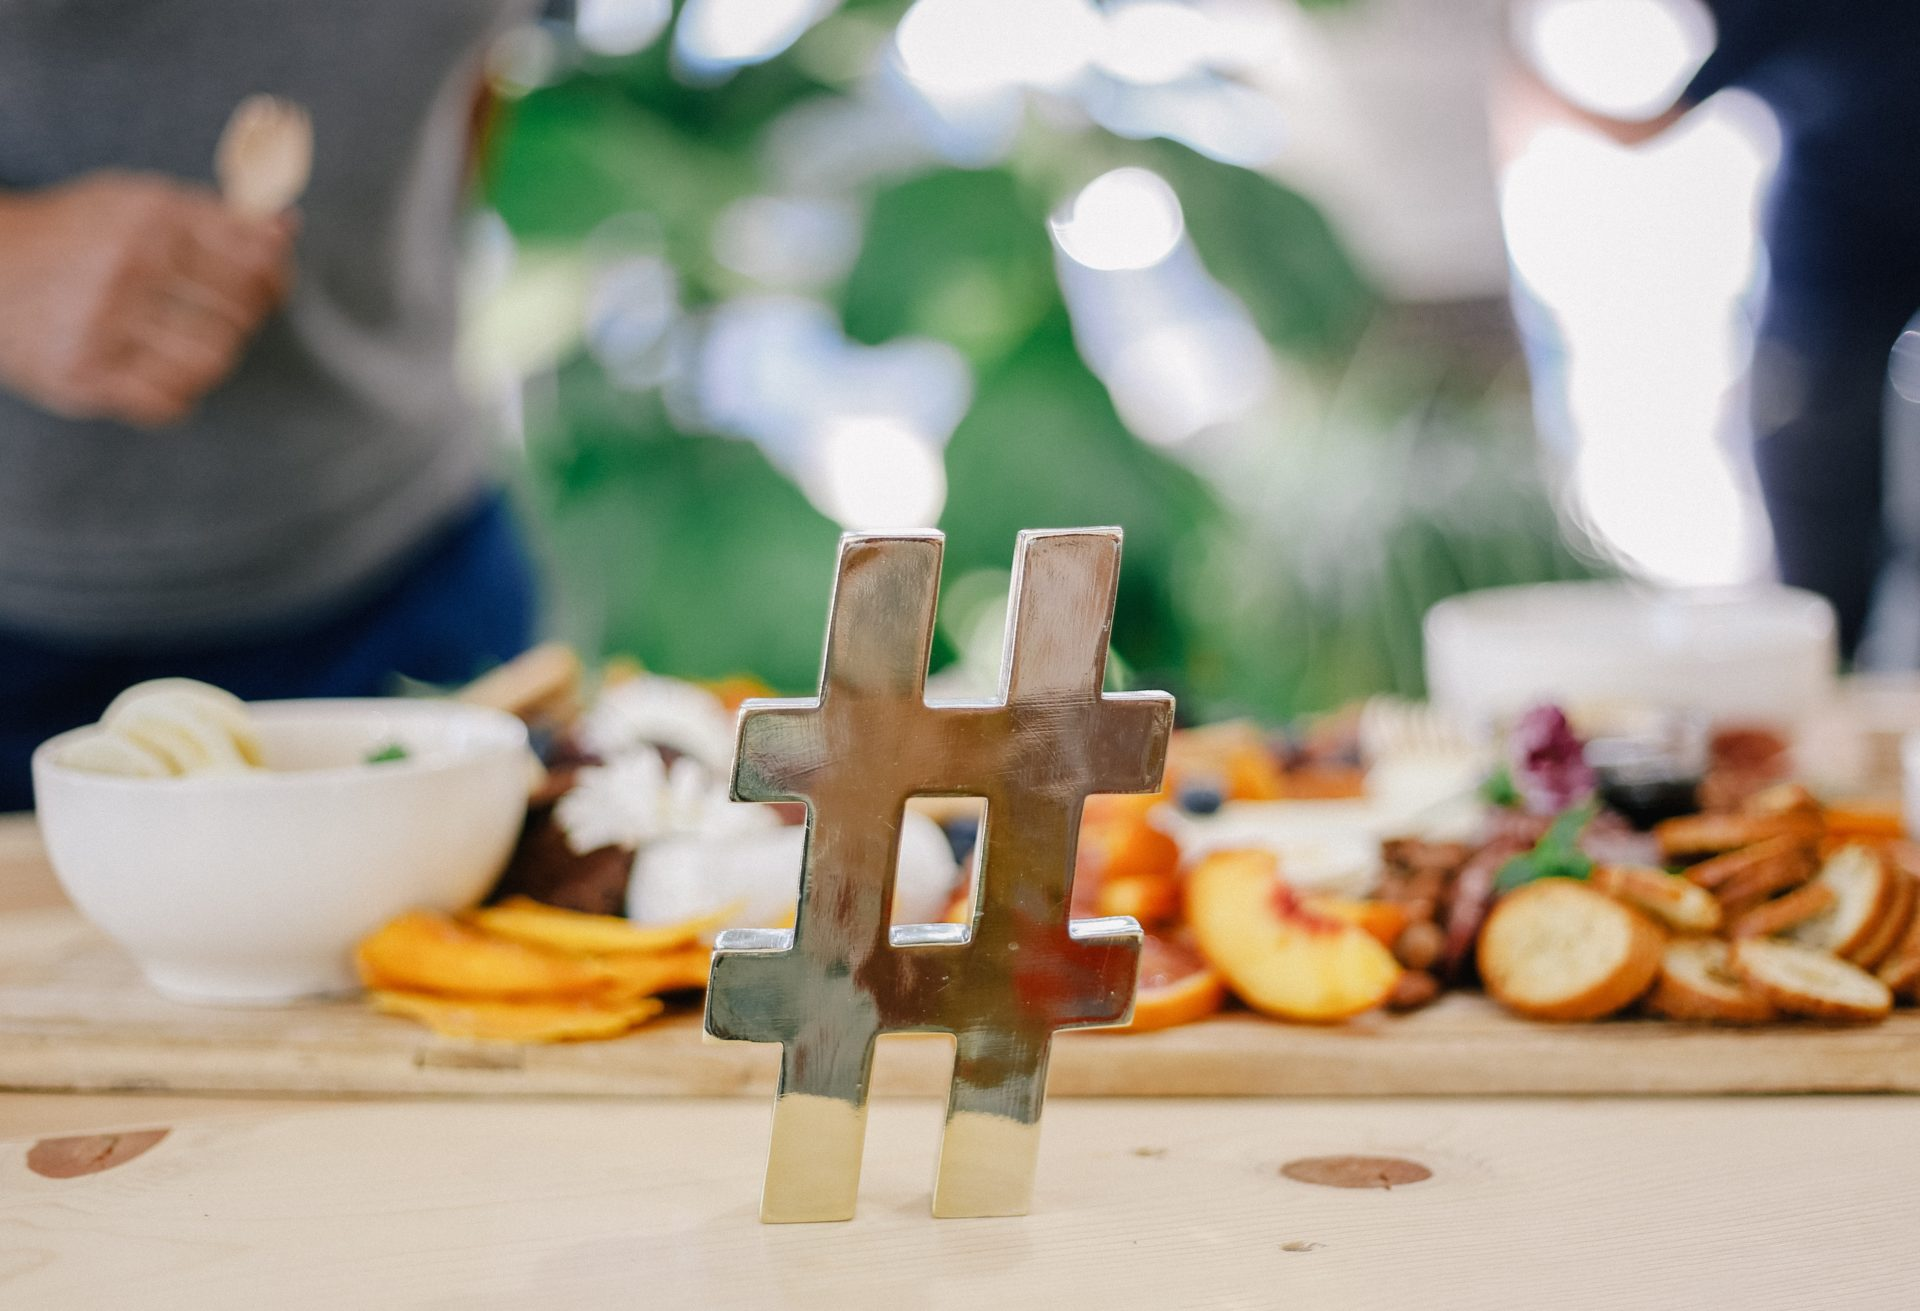 silver hashtag in front of people cooking